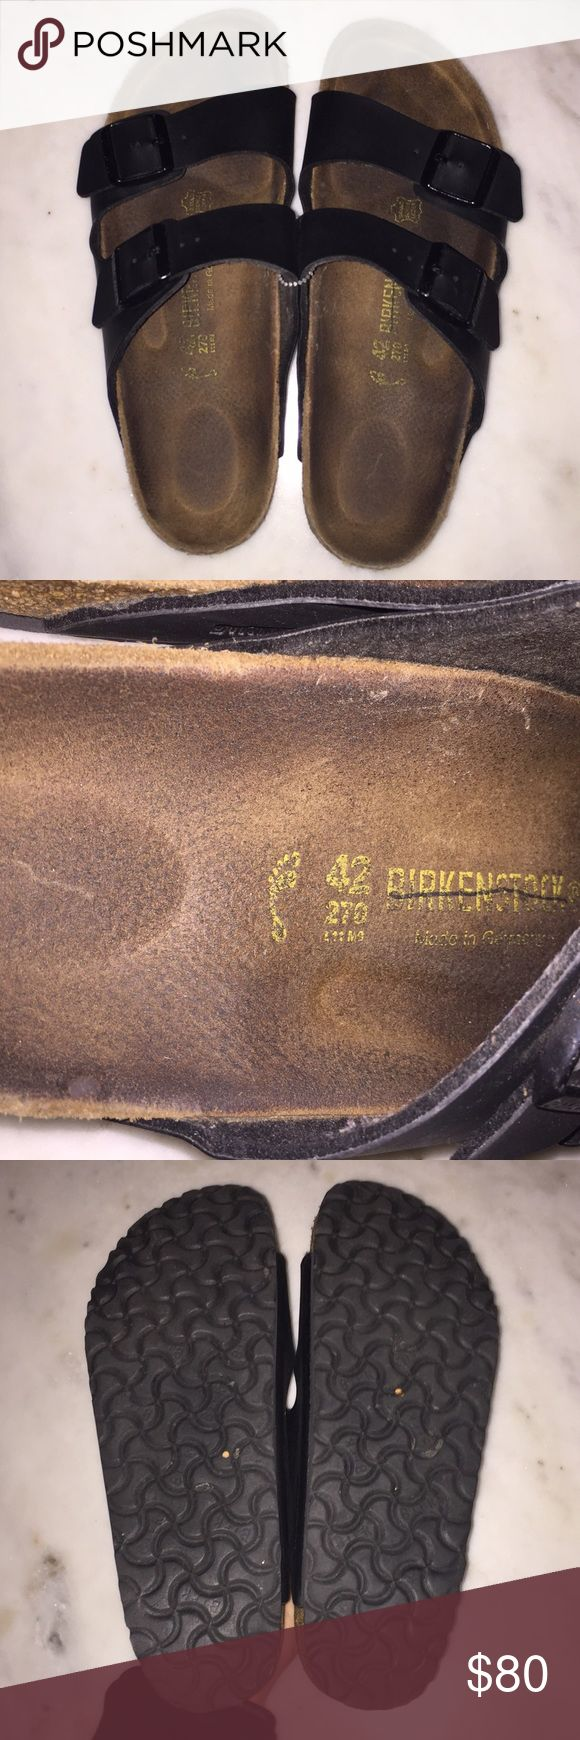 NWOT Birkenstocks NWOT Birkenstocks, black leather-like, only tried on but never worn as shown in pictures of soles, Ladies size 11 Men size 9 Birkenstock Shoes Sandals & Flip-Flops